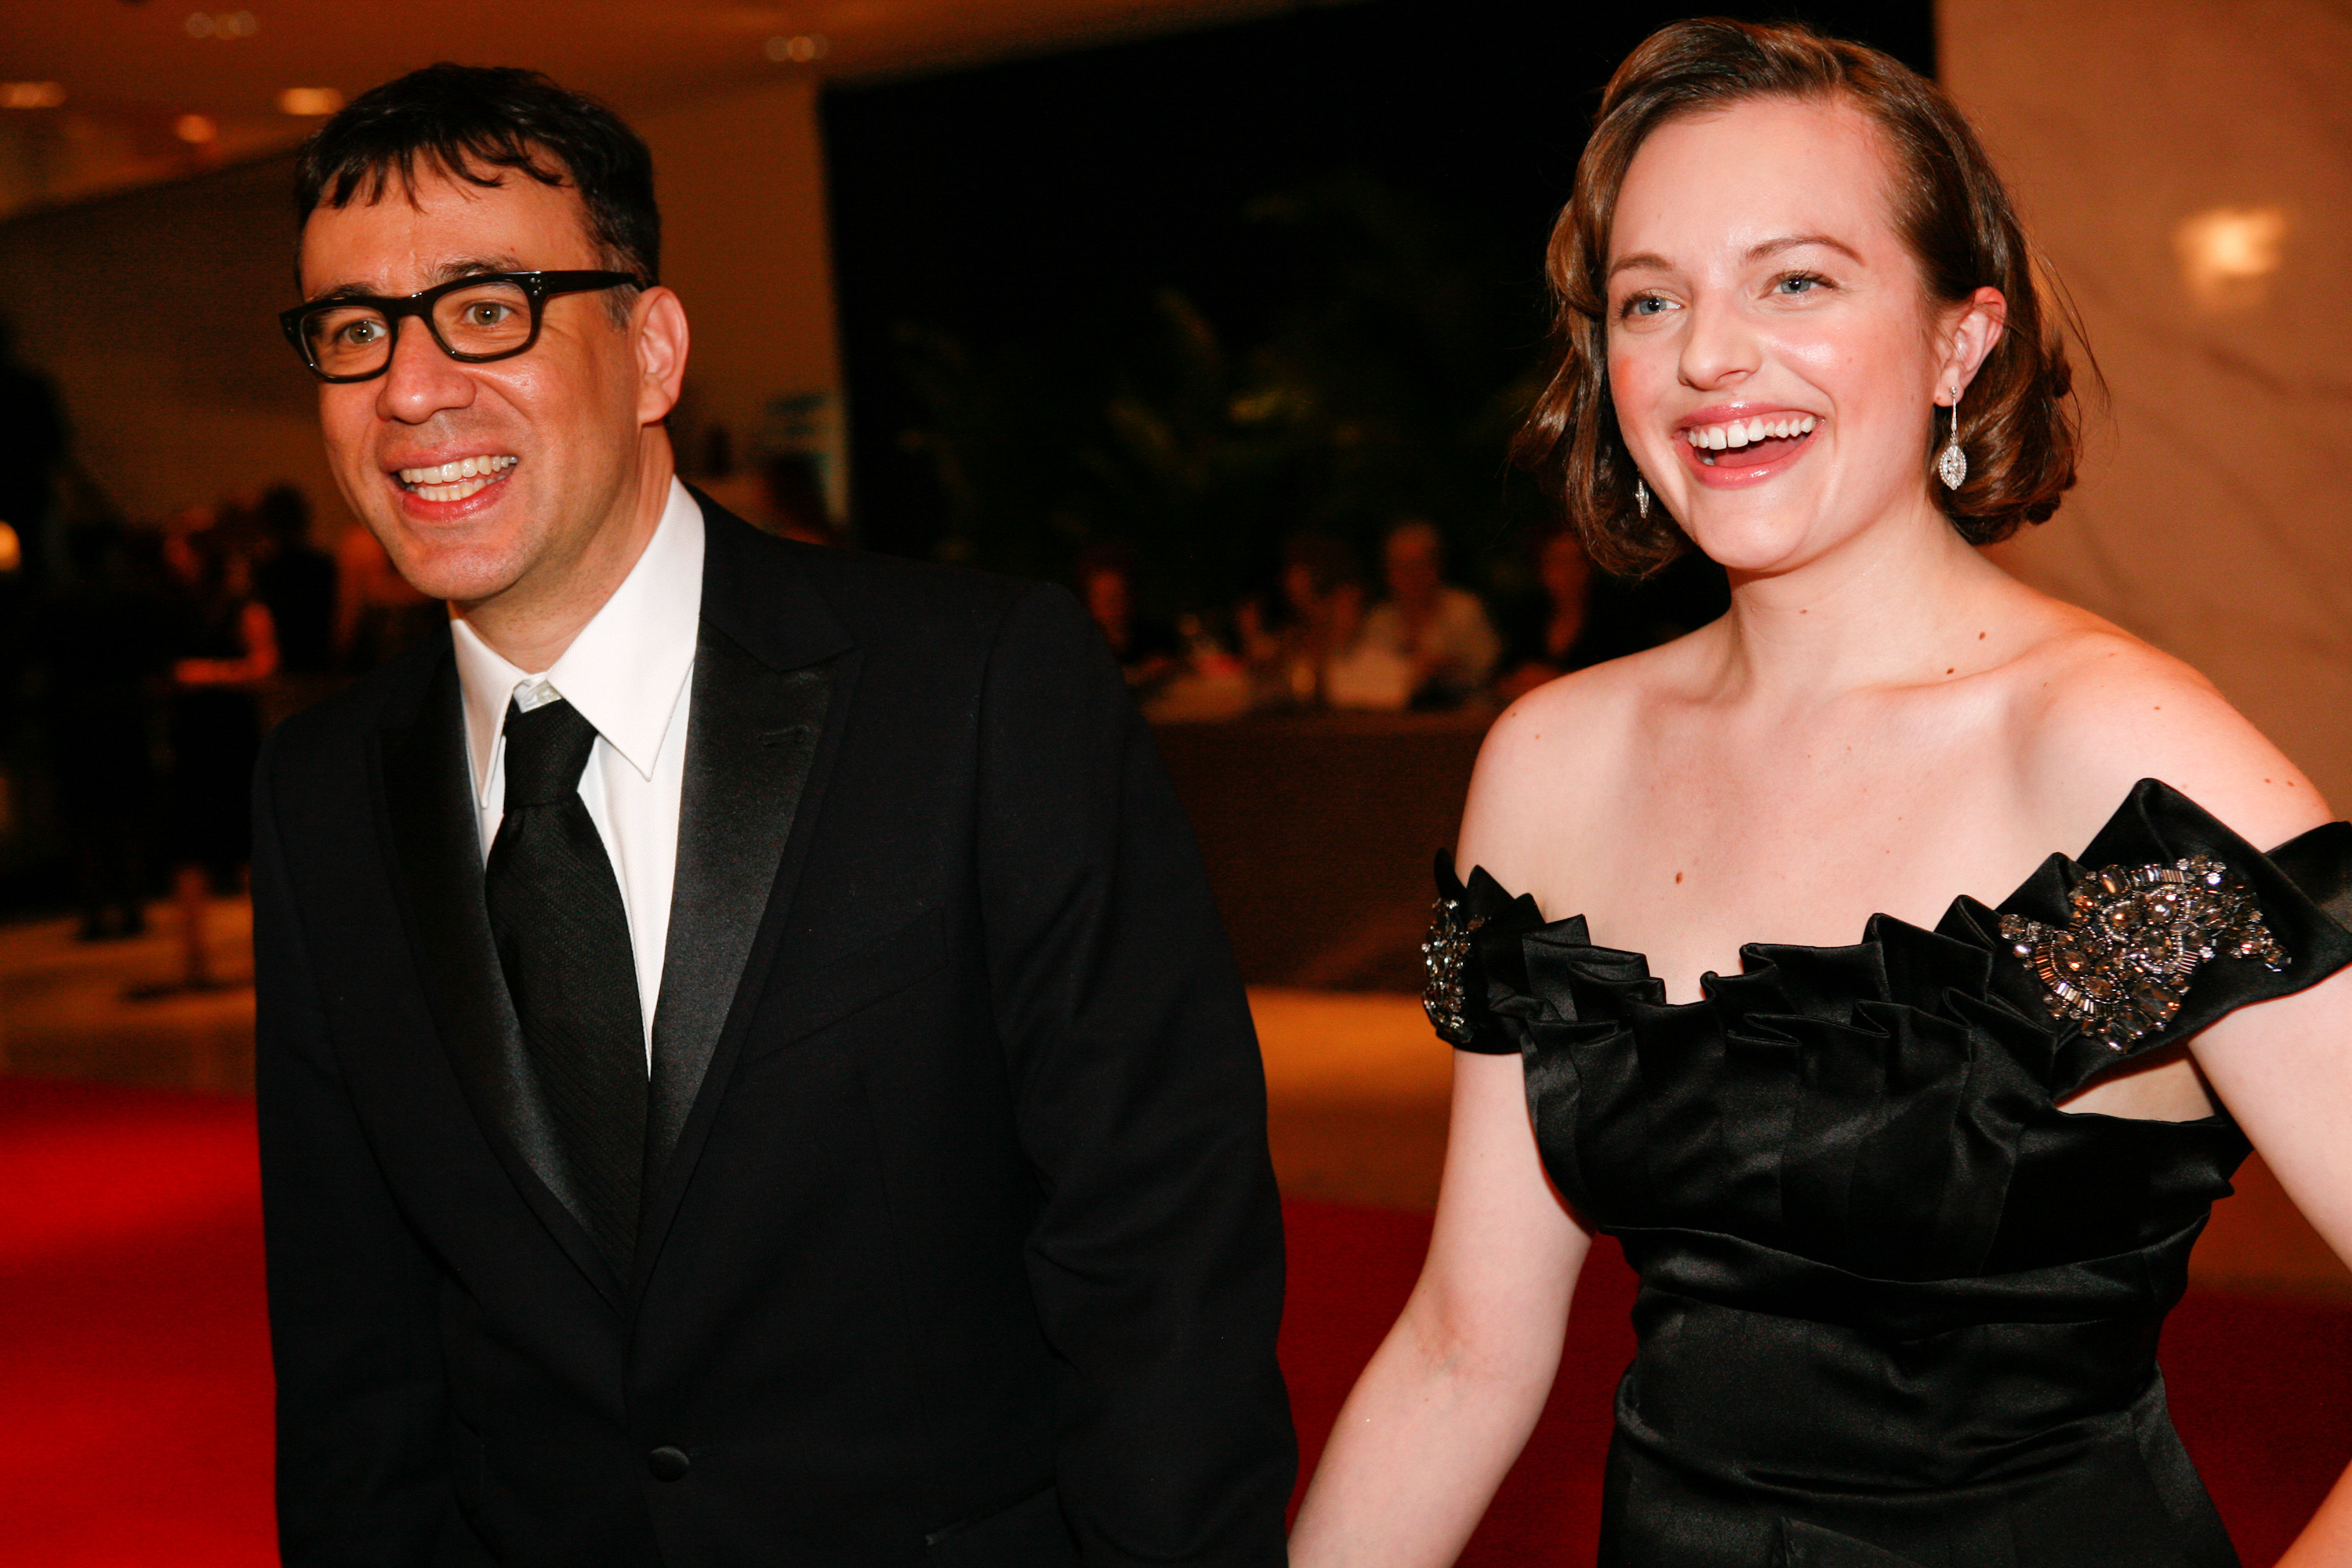 Fred Armisen and Elisabeth Moss walking into the White House Correspondence dinner in 2010